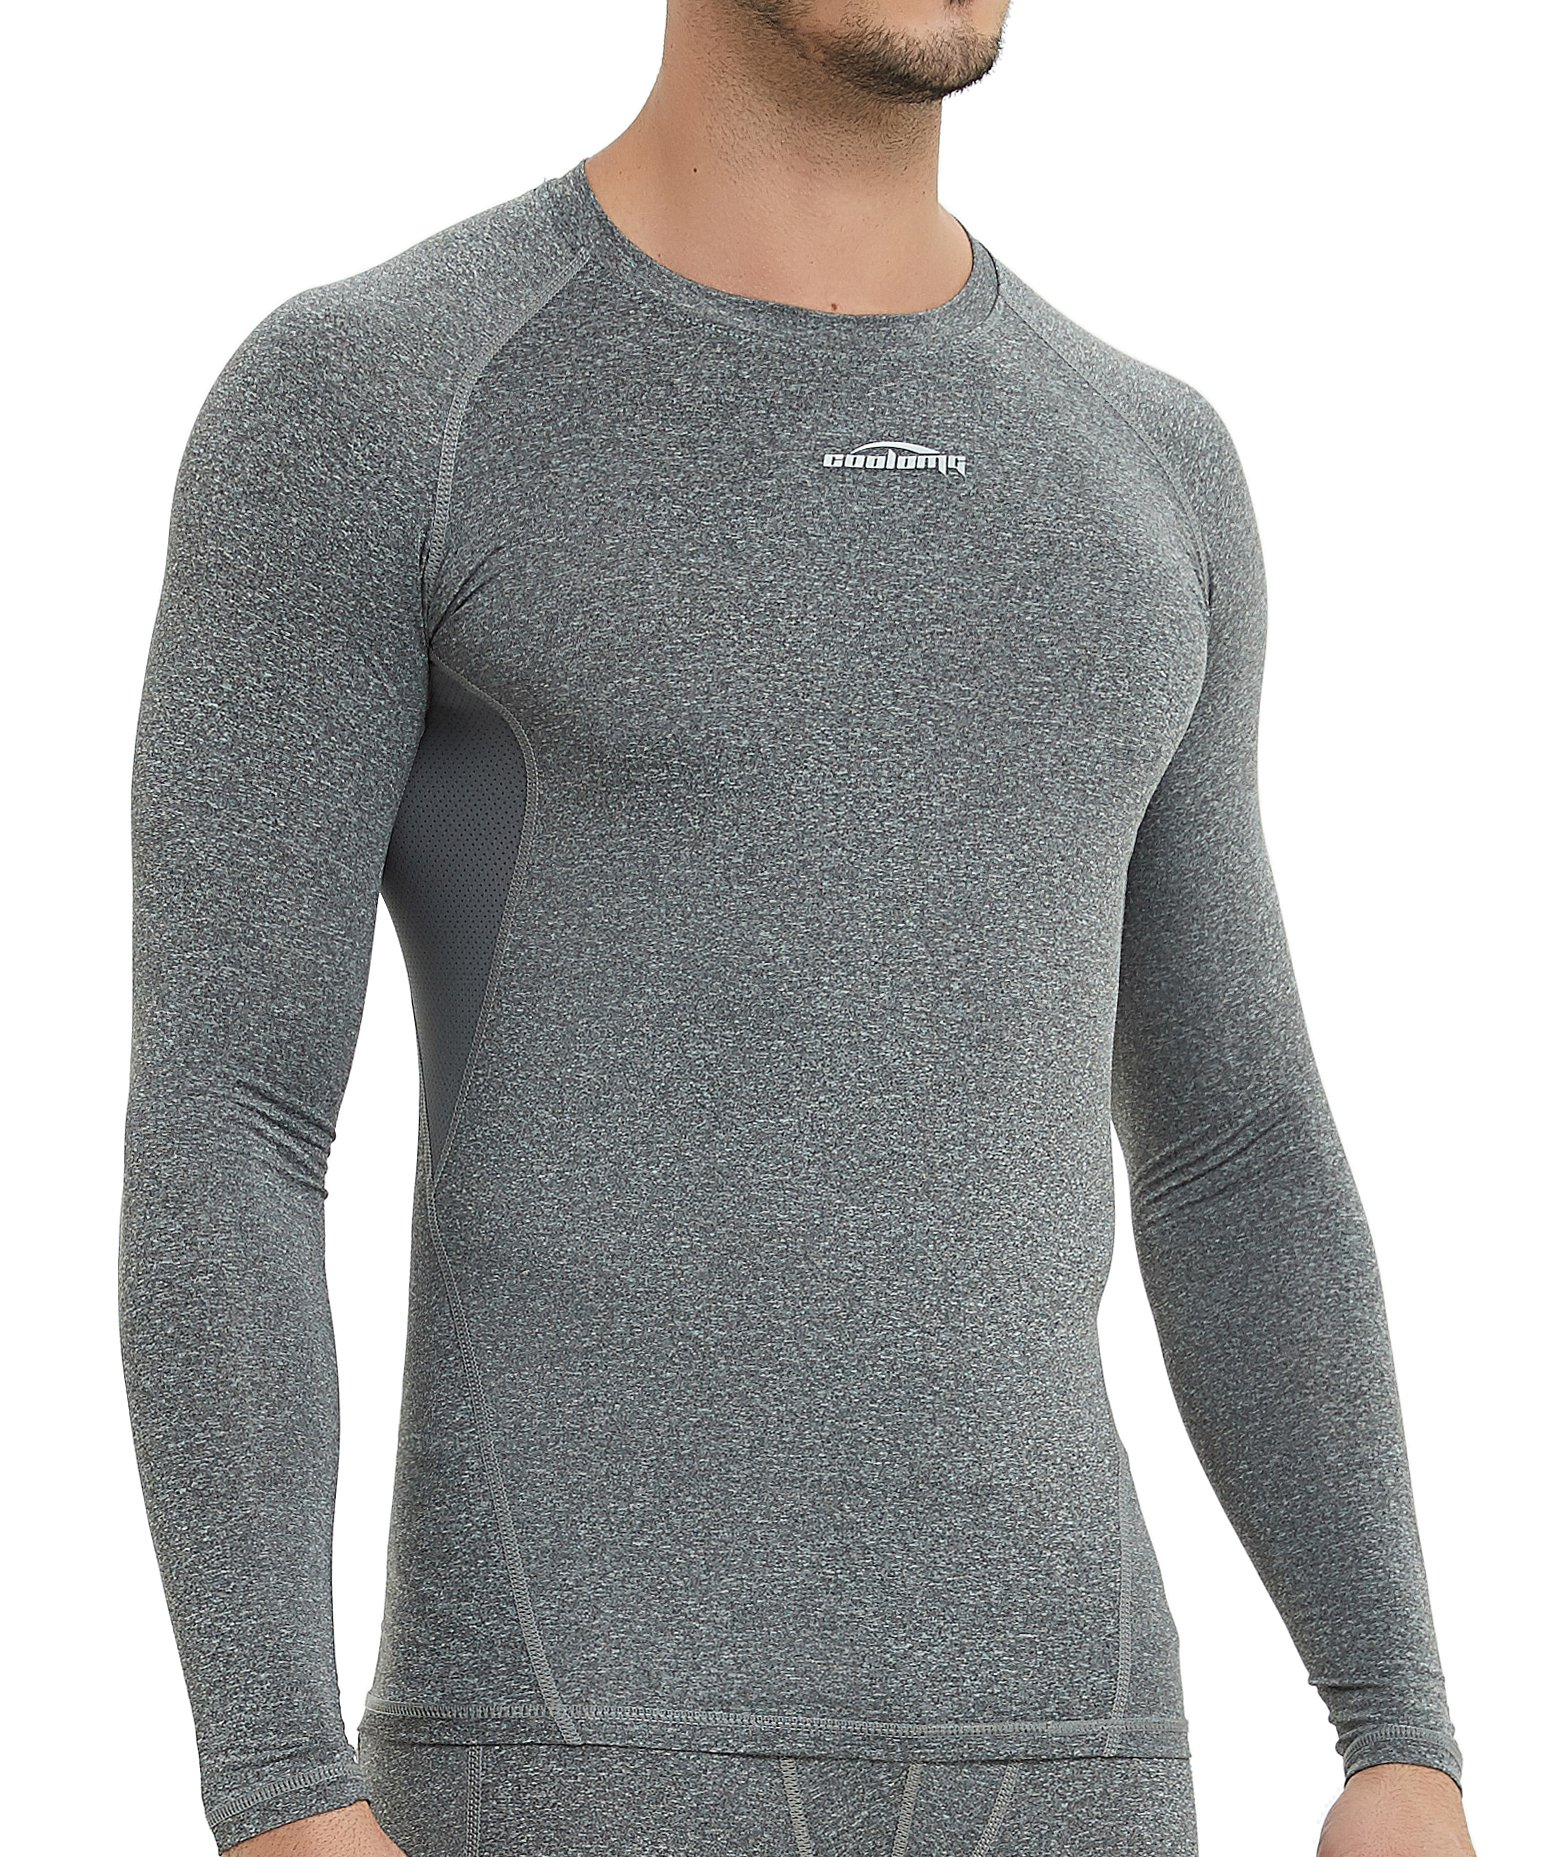 COOLOMG Men's Long Sleeve Shirt Skin Fit Cool Dry Compression Top Baselayer